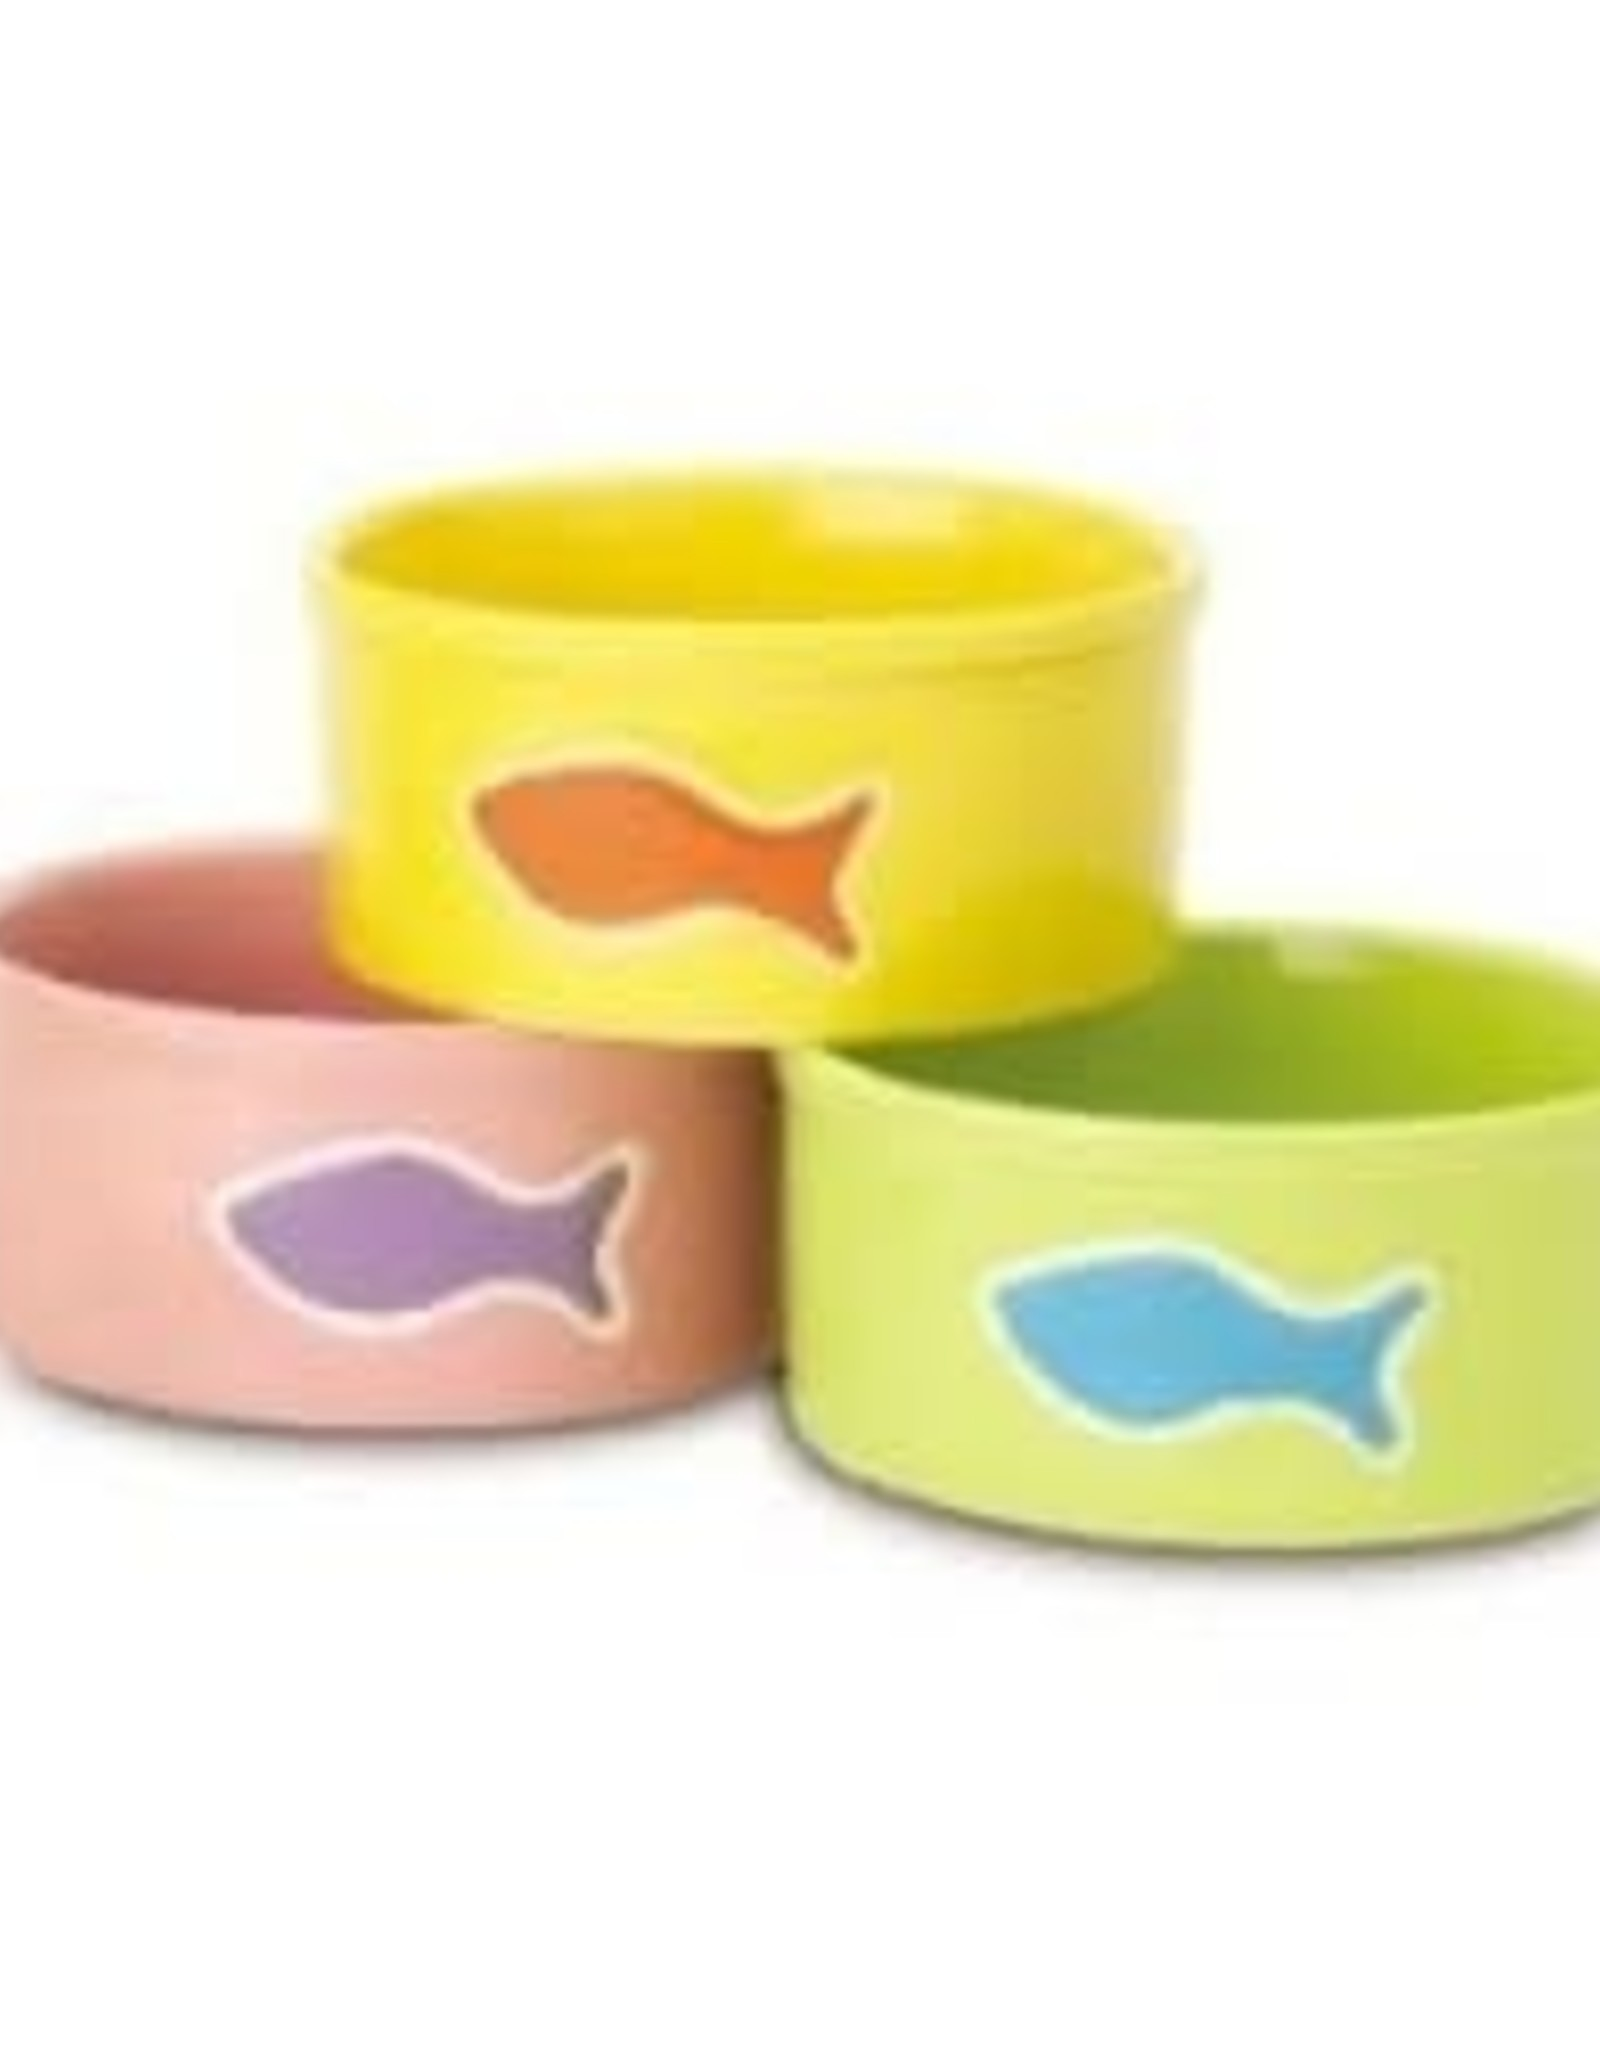 Petrageous Designs Ltd. Teeny Tiny Fishes Cat Water Dish 2 Cup